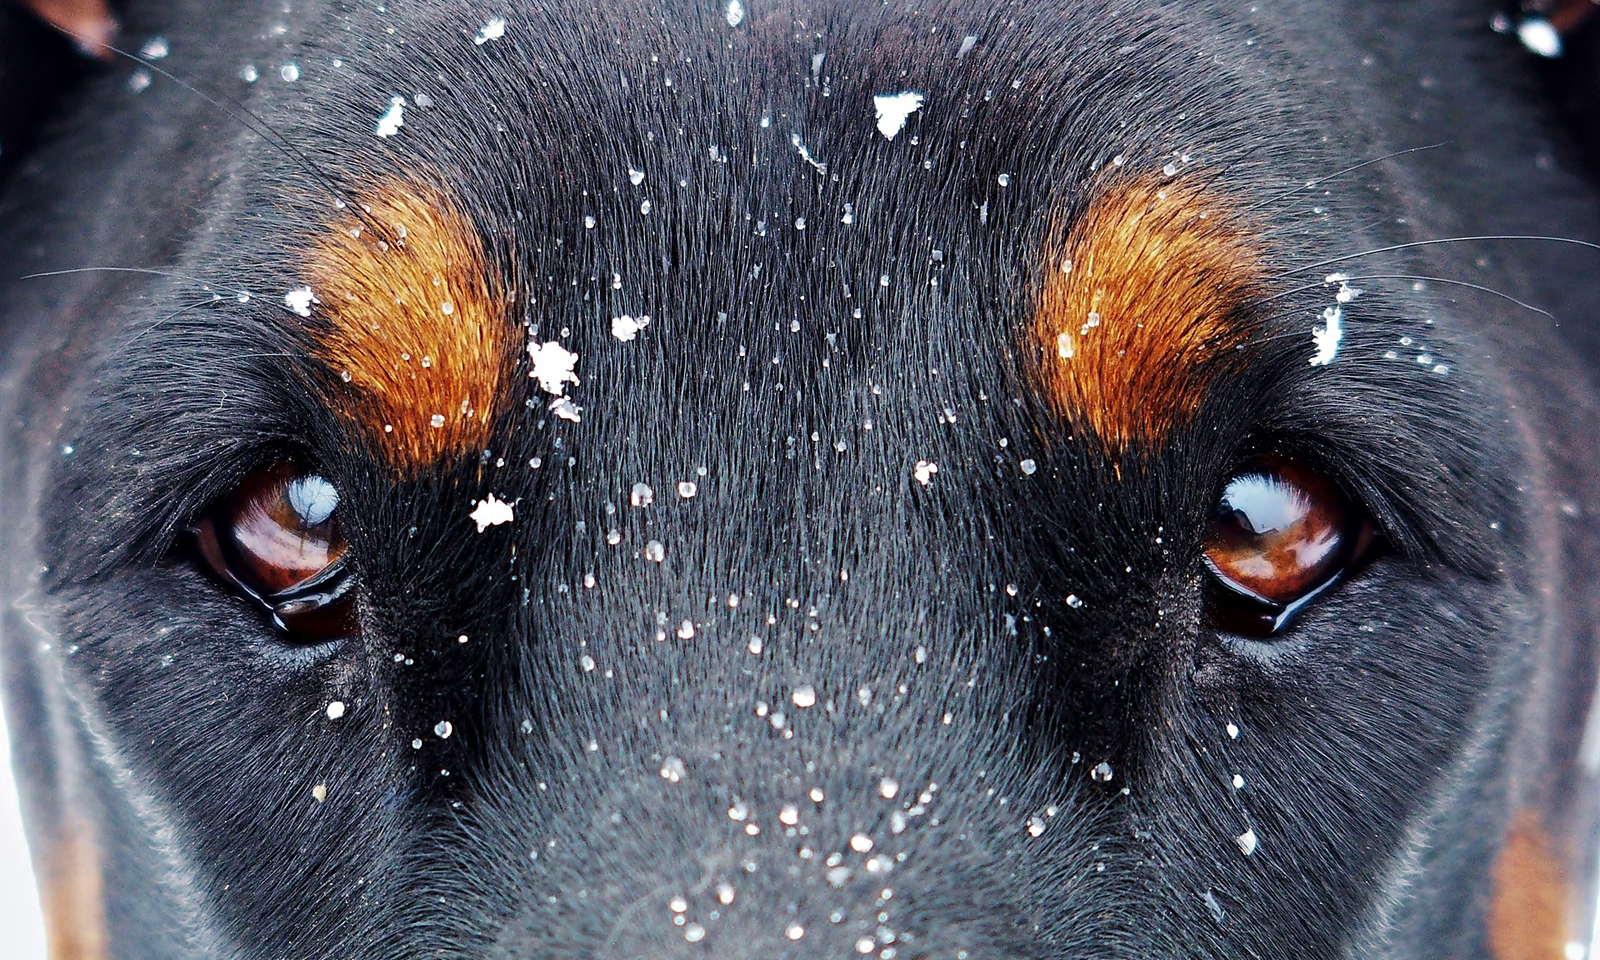 dog-eyes-snow-flakes-Photo-Yama-Zsuzsanna-Márkus-VGM